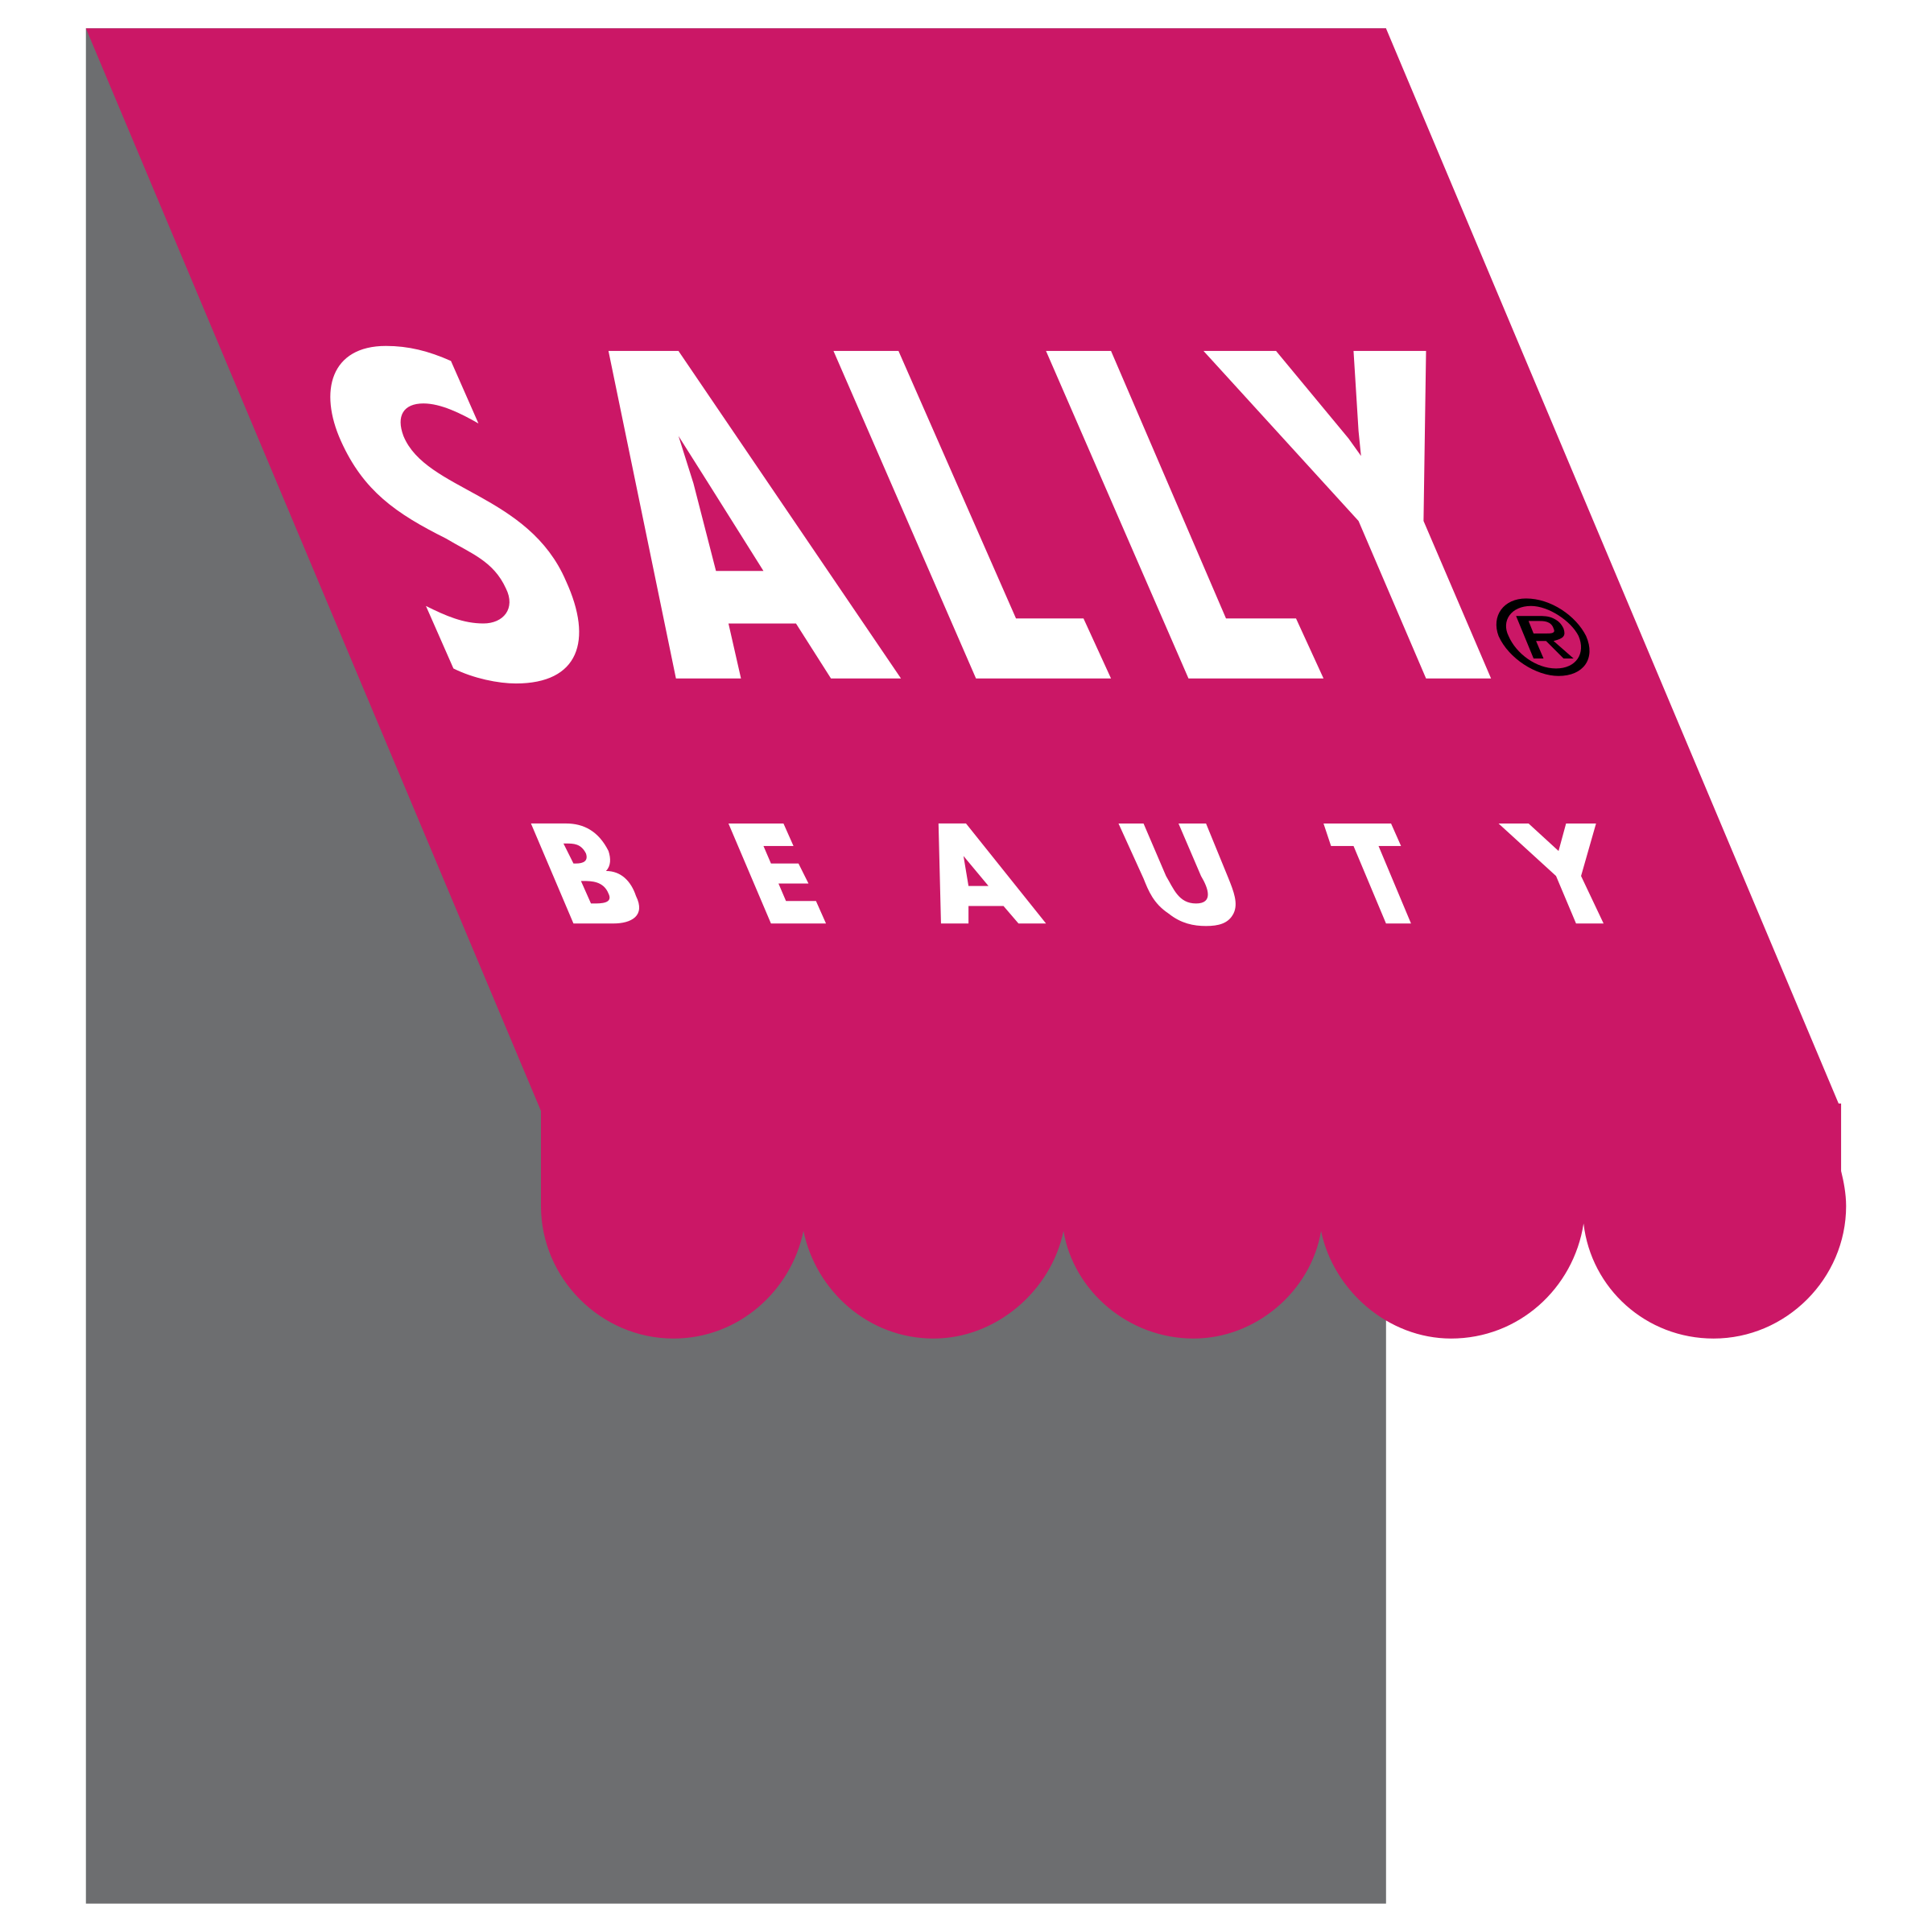 Sally Beauty Logo PNG Transparent & SVG Vector.